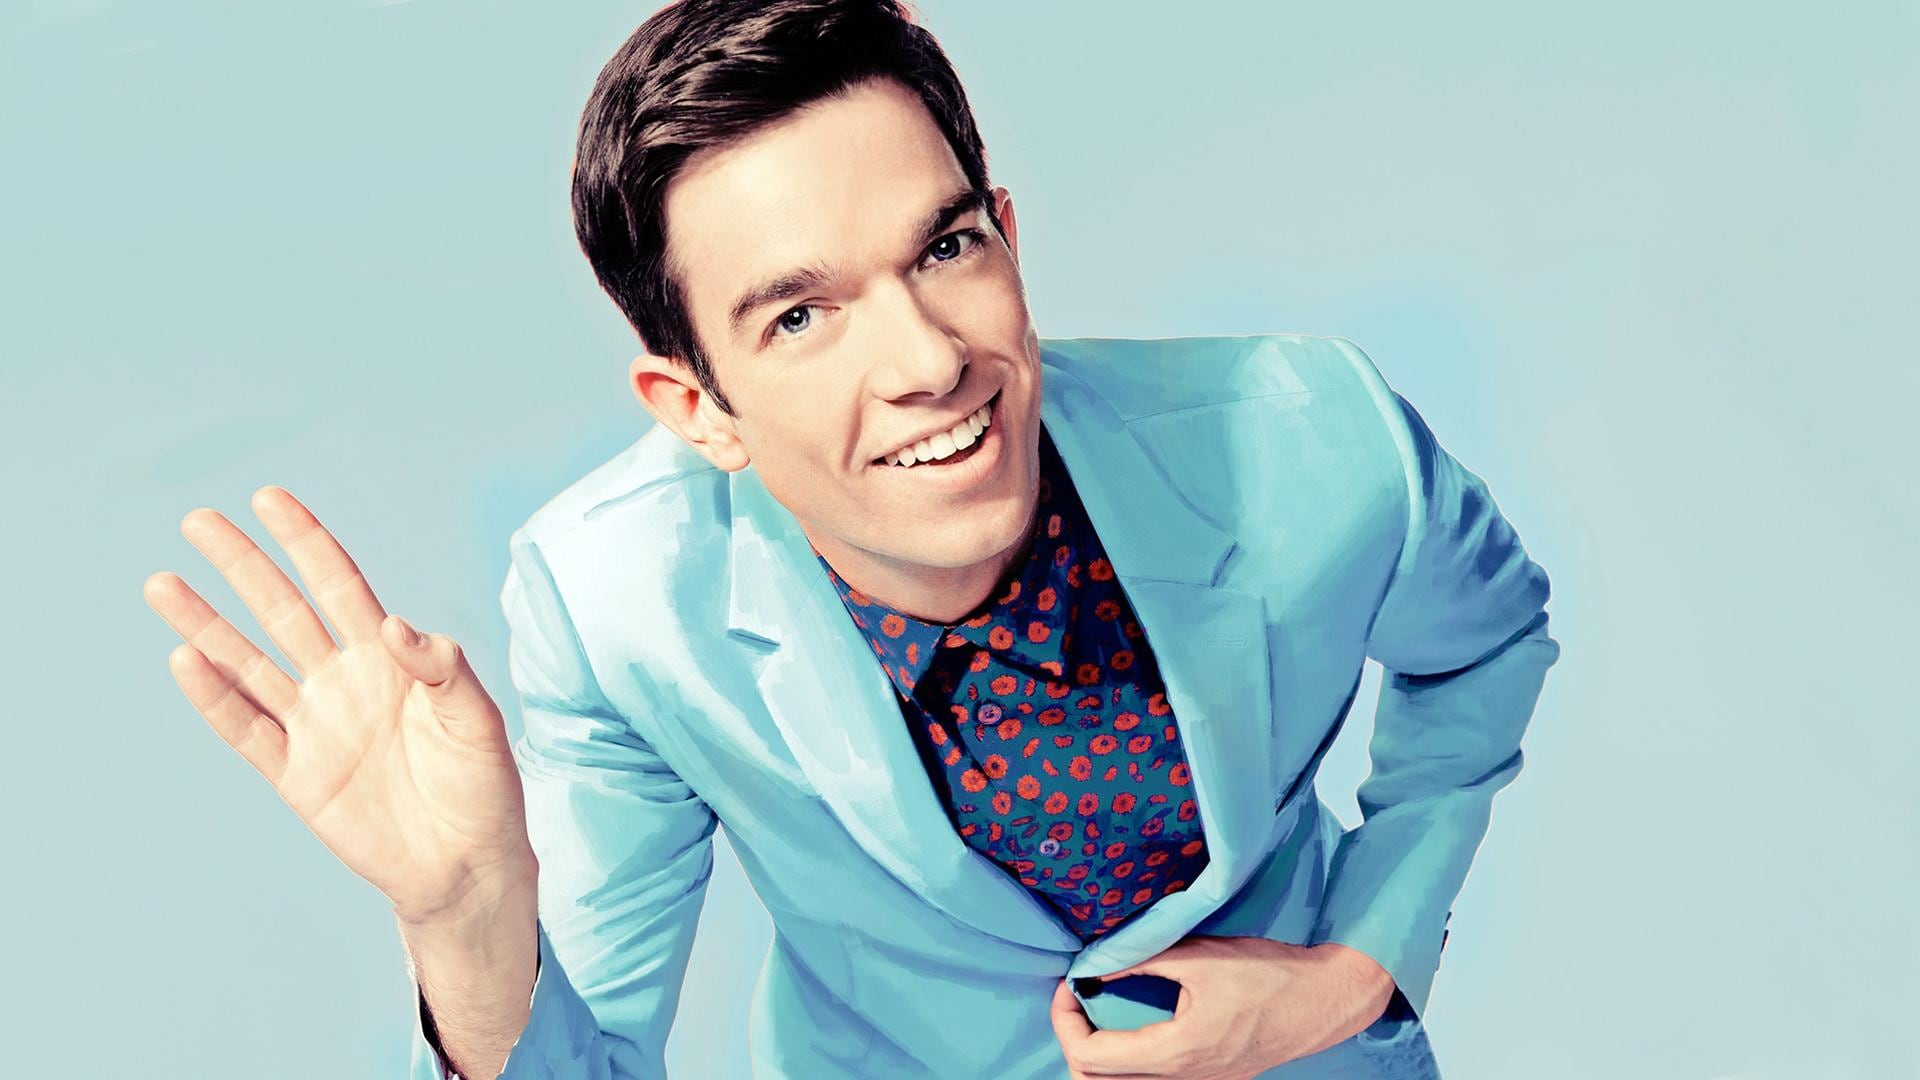 John Mulaney: March 2, 2019